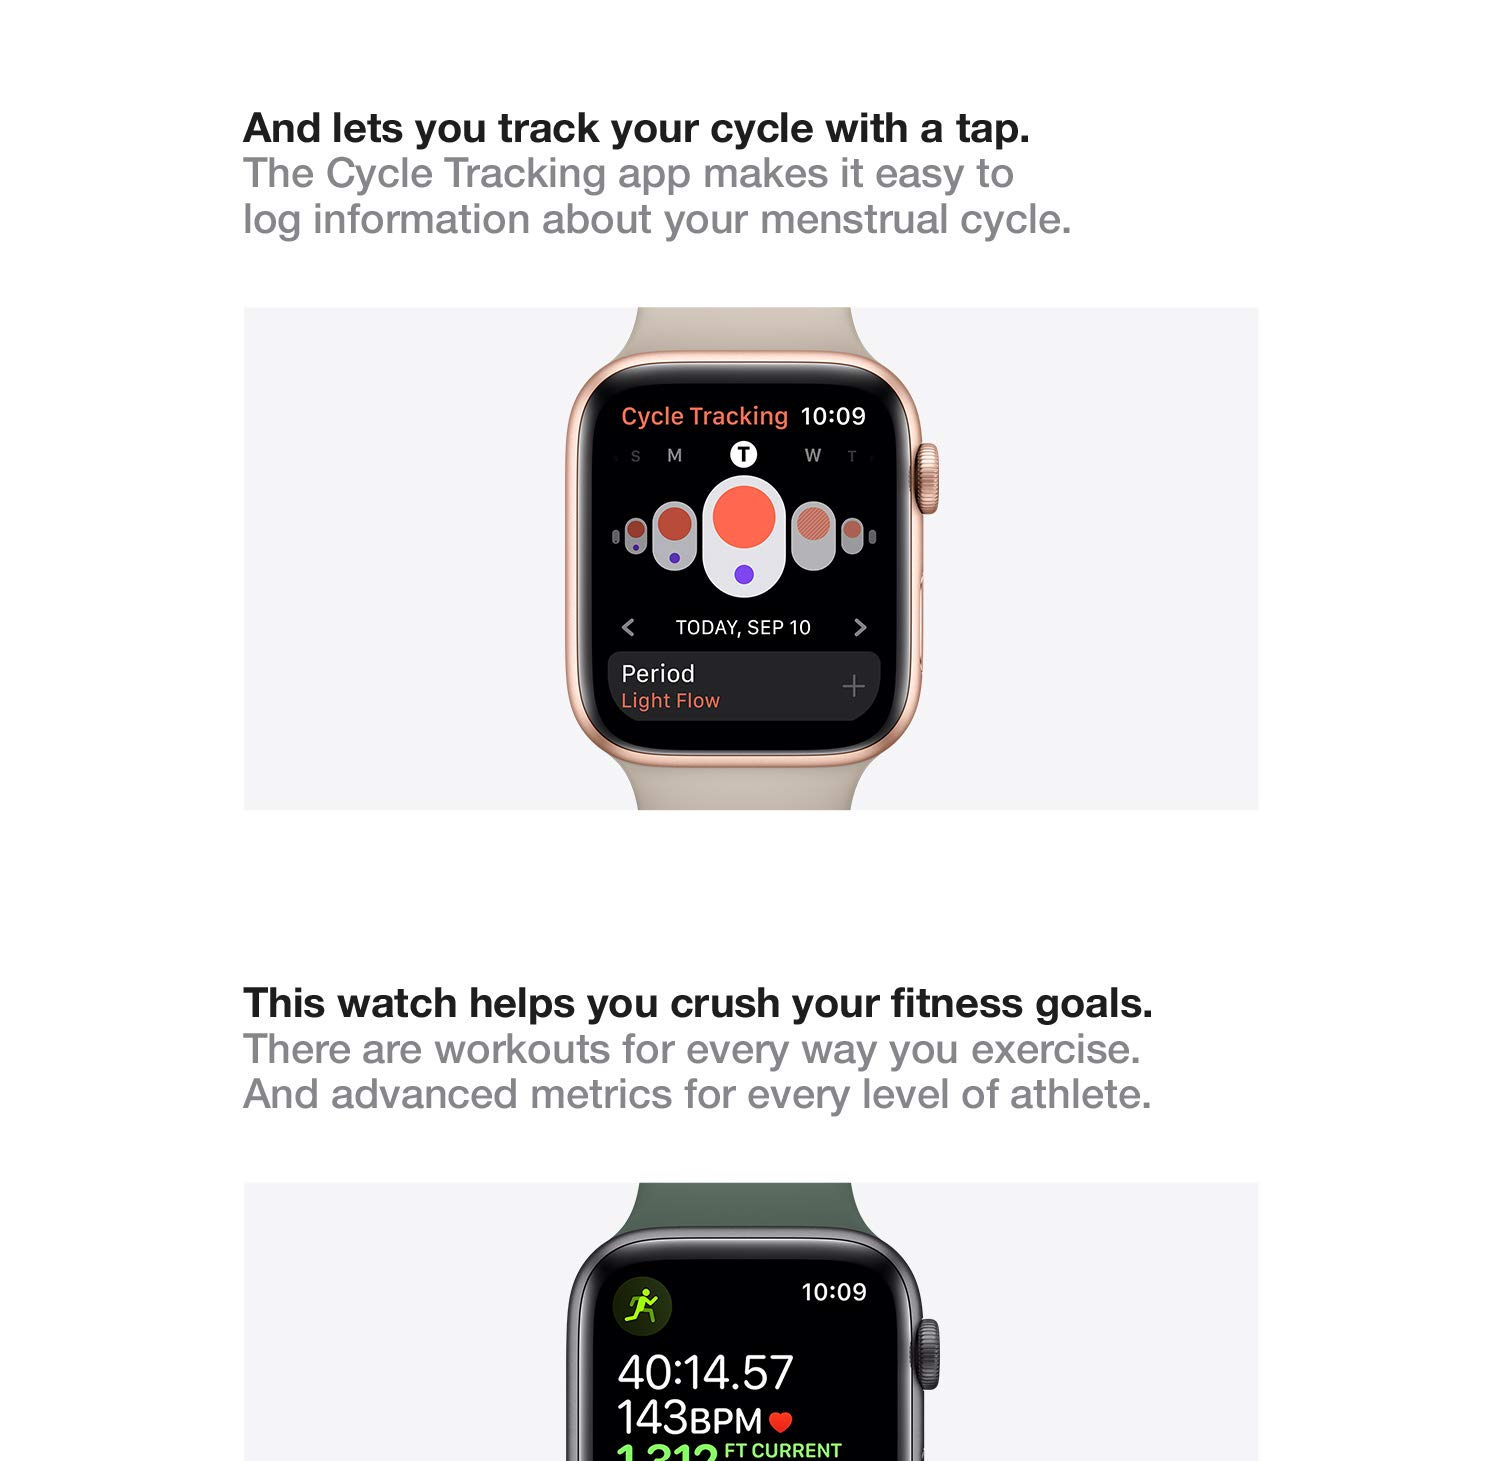 And lets you track your cycle with a tap.  The new Cycle Tracking app makes it easy to log information about your menstrual cycle.  This watch helps you crush your fitness goals.  With advanced workout metrics, GPS, and water resistance to 50 meters, it's made for all the ways you exercise.